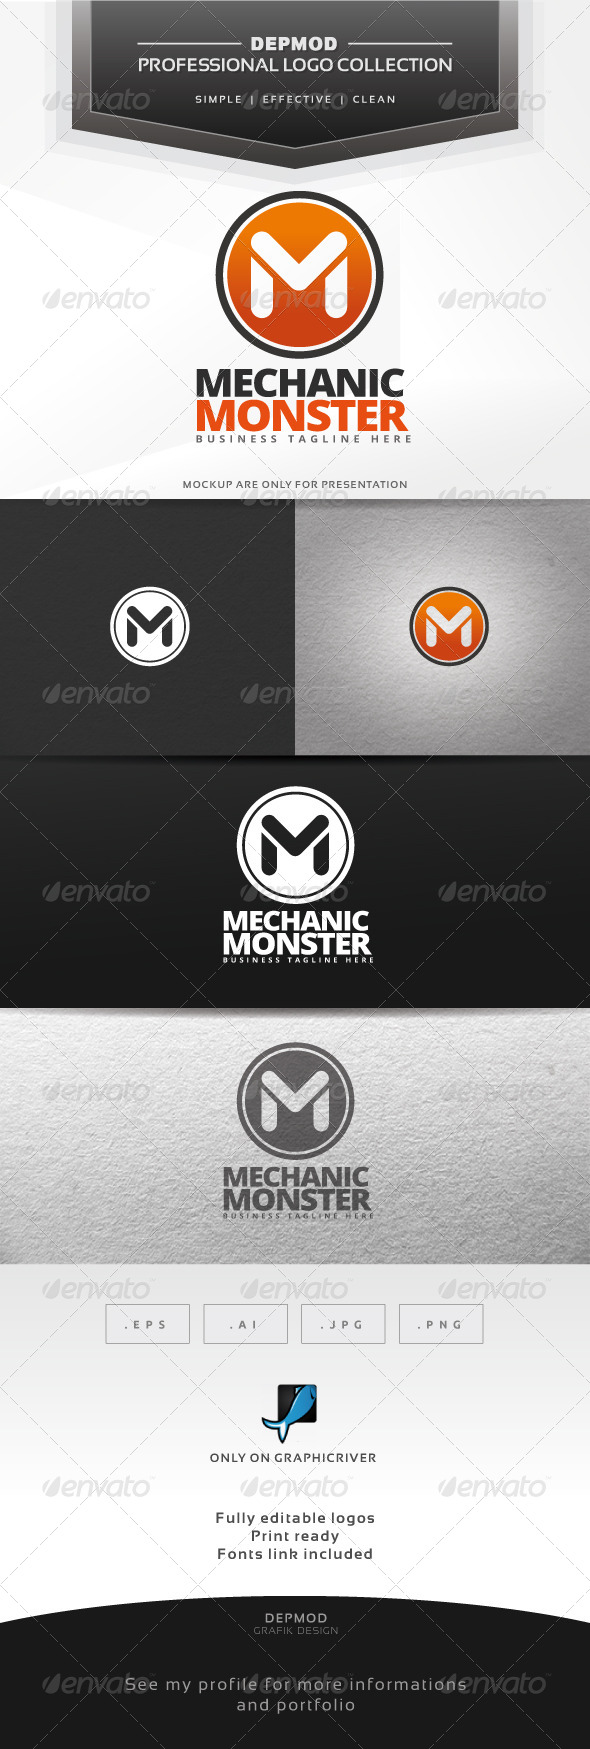 GraphicRiver Mechanic Monster Logo 6781873